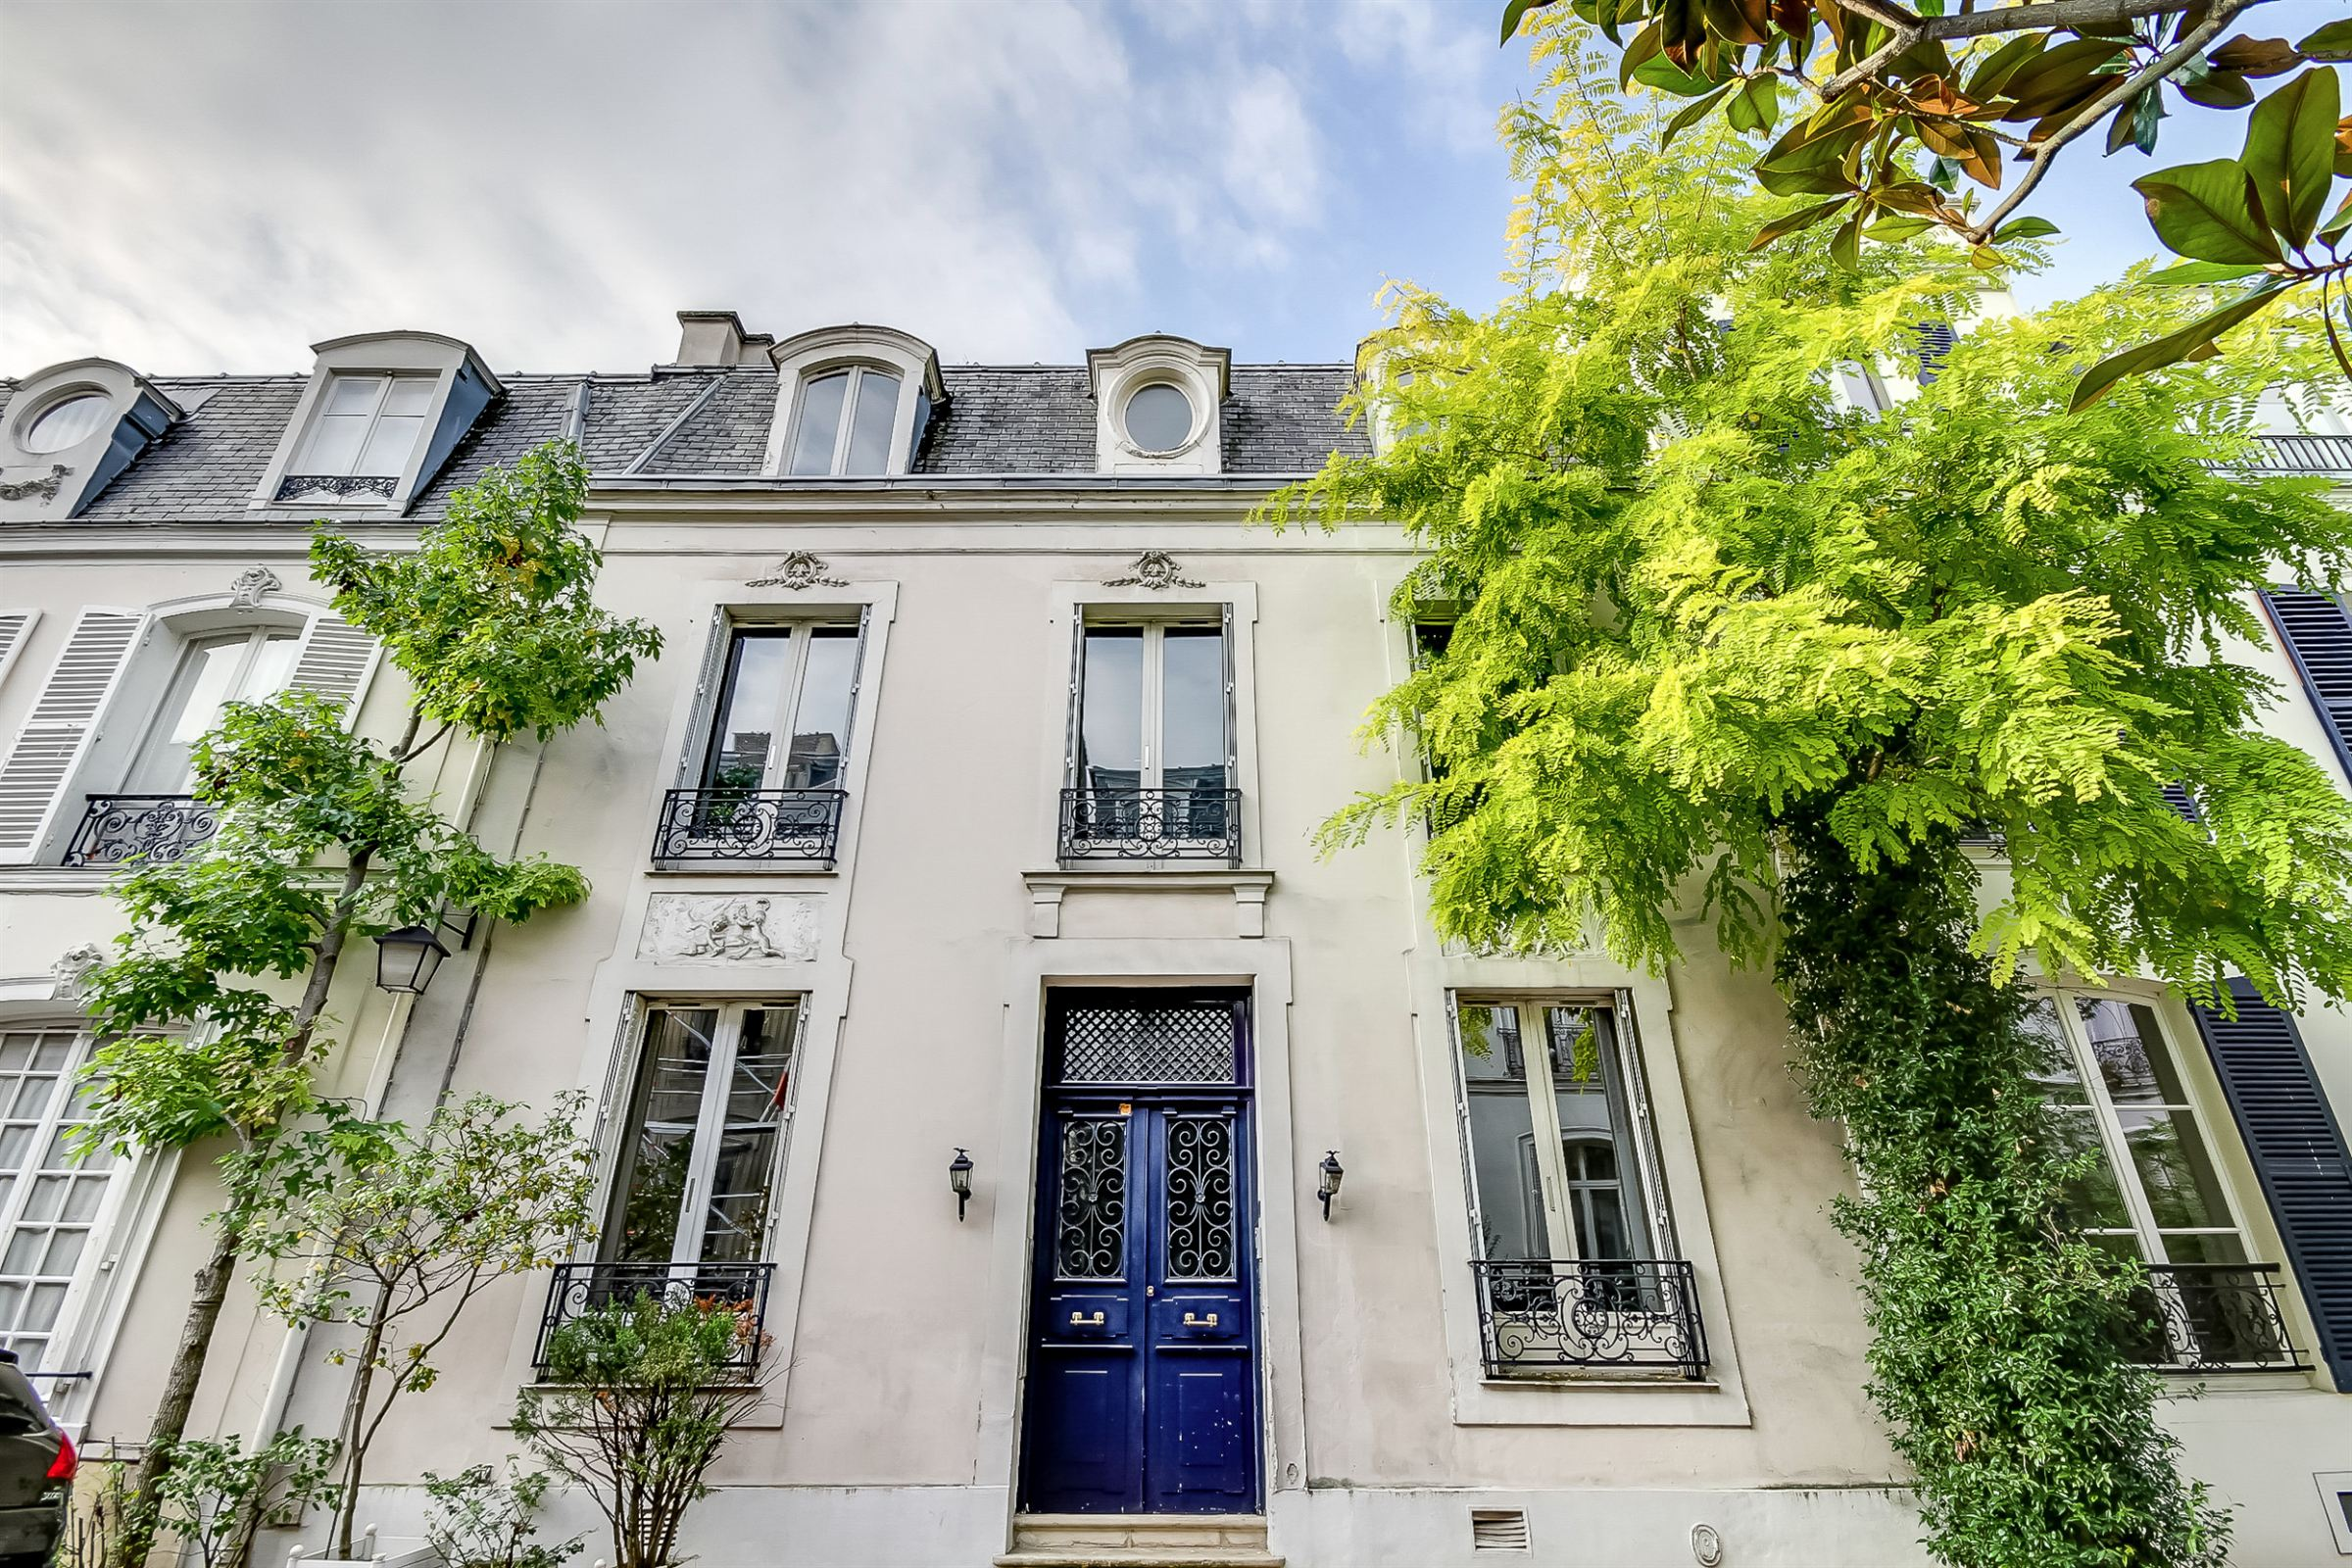 Villa per Vendita alle ore Paris 16 - Foch. Private Mansion of 240 sq.m + a 45 sq.m courtyard Paris, Parigi 75016 Francia